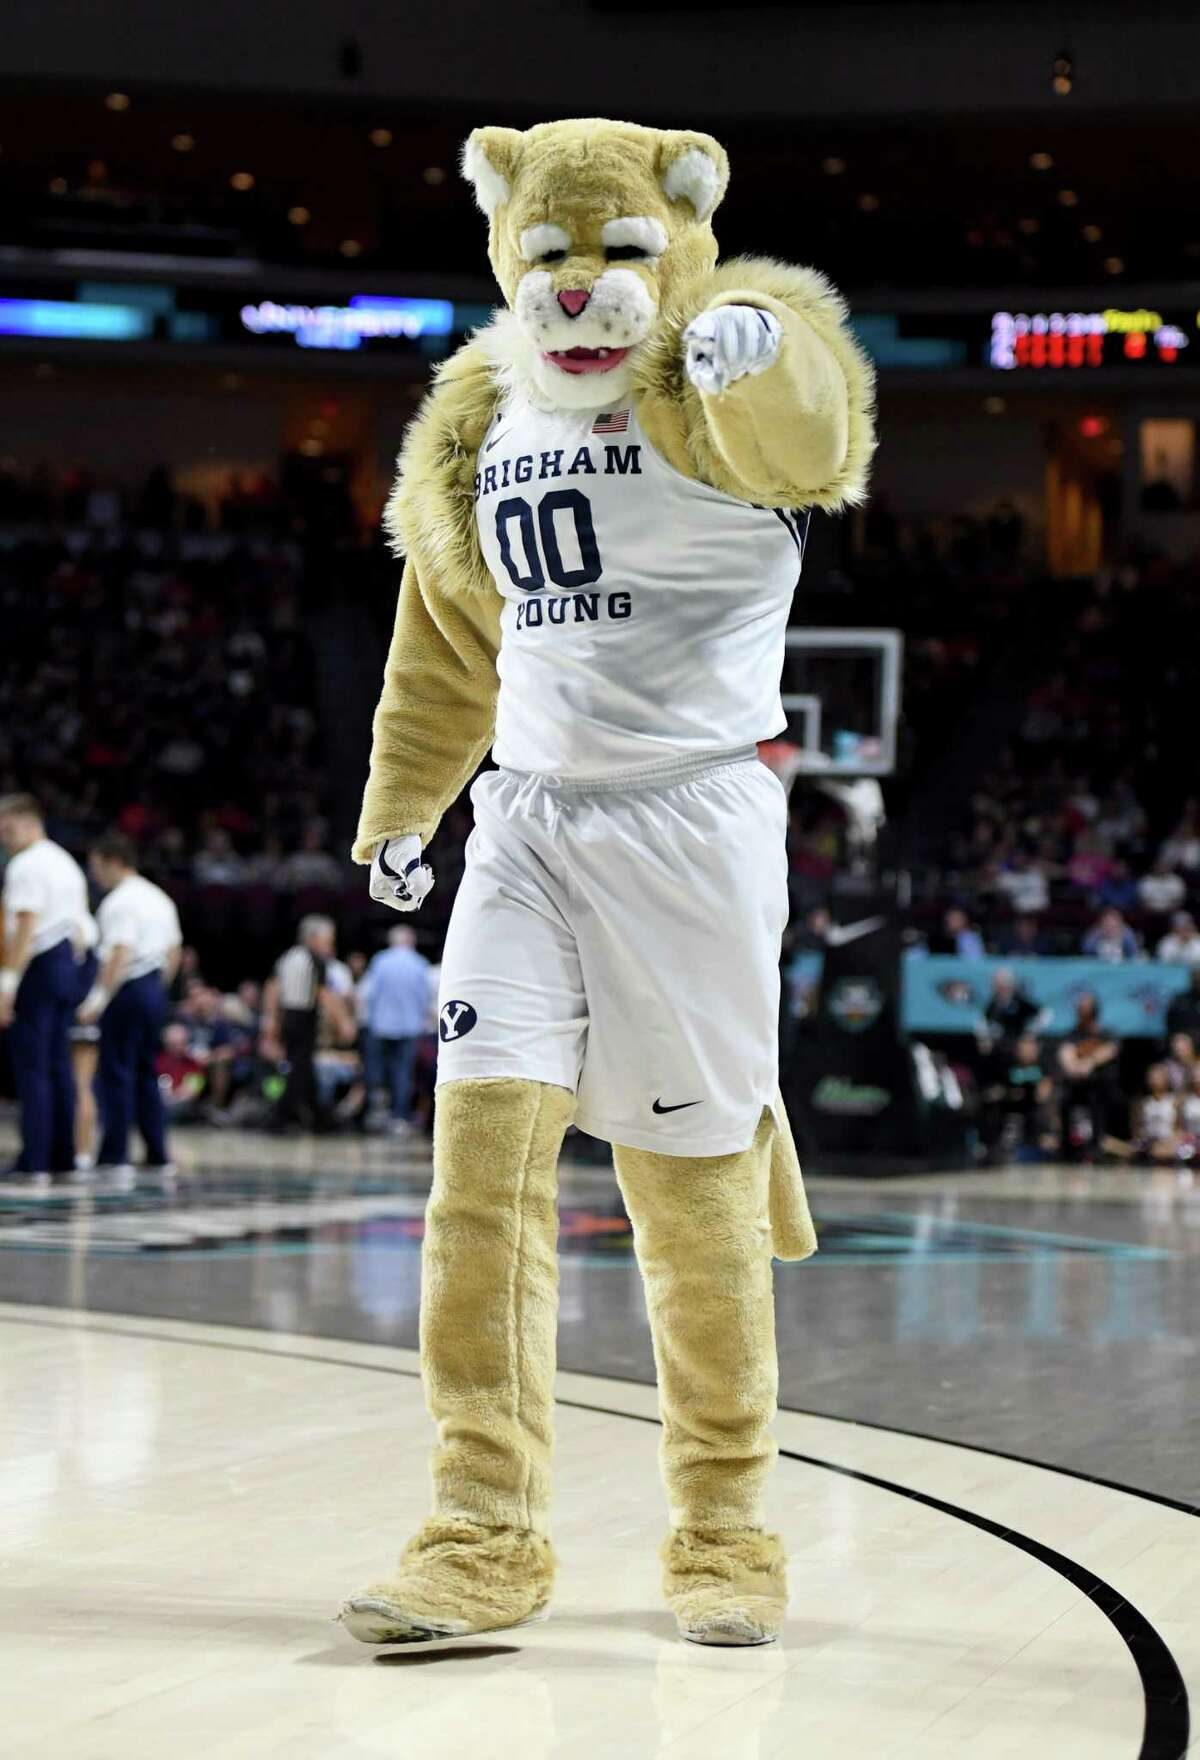 LAS VEGAS, NEVADA - MARCH 09: The Brigham Young Cougars mascot Cosmo the Cougar performs during the team's game against the Saint Mary's Gaels during the West Coast Conference basketball tournament semifinals at the Orleans Arena on March 9, 2020 in Las Vegas, Nevada. The Gaels defeated the Cougars 51-50.